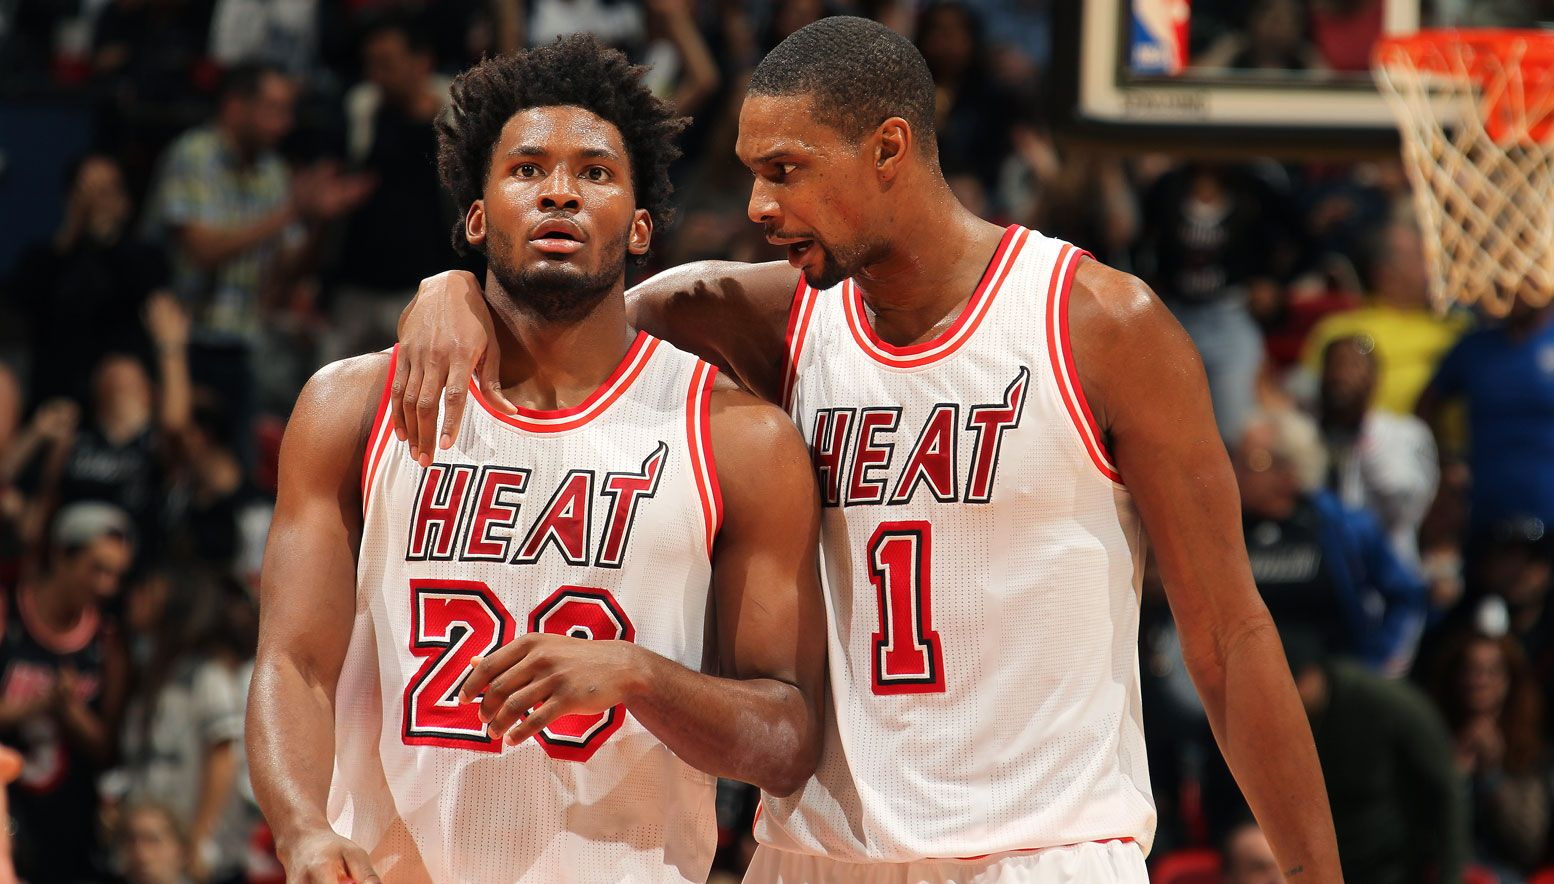 Justise Winslow and Chris Bosh